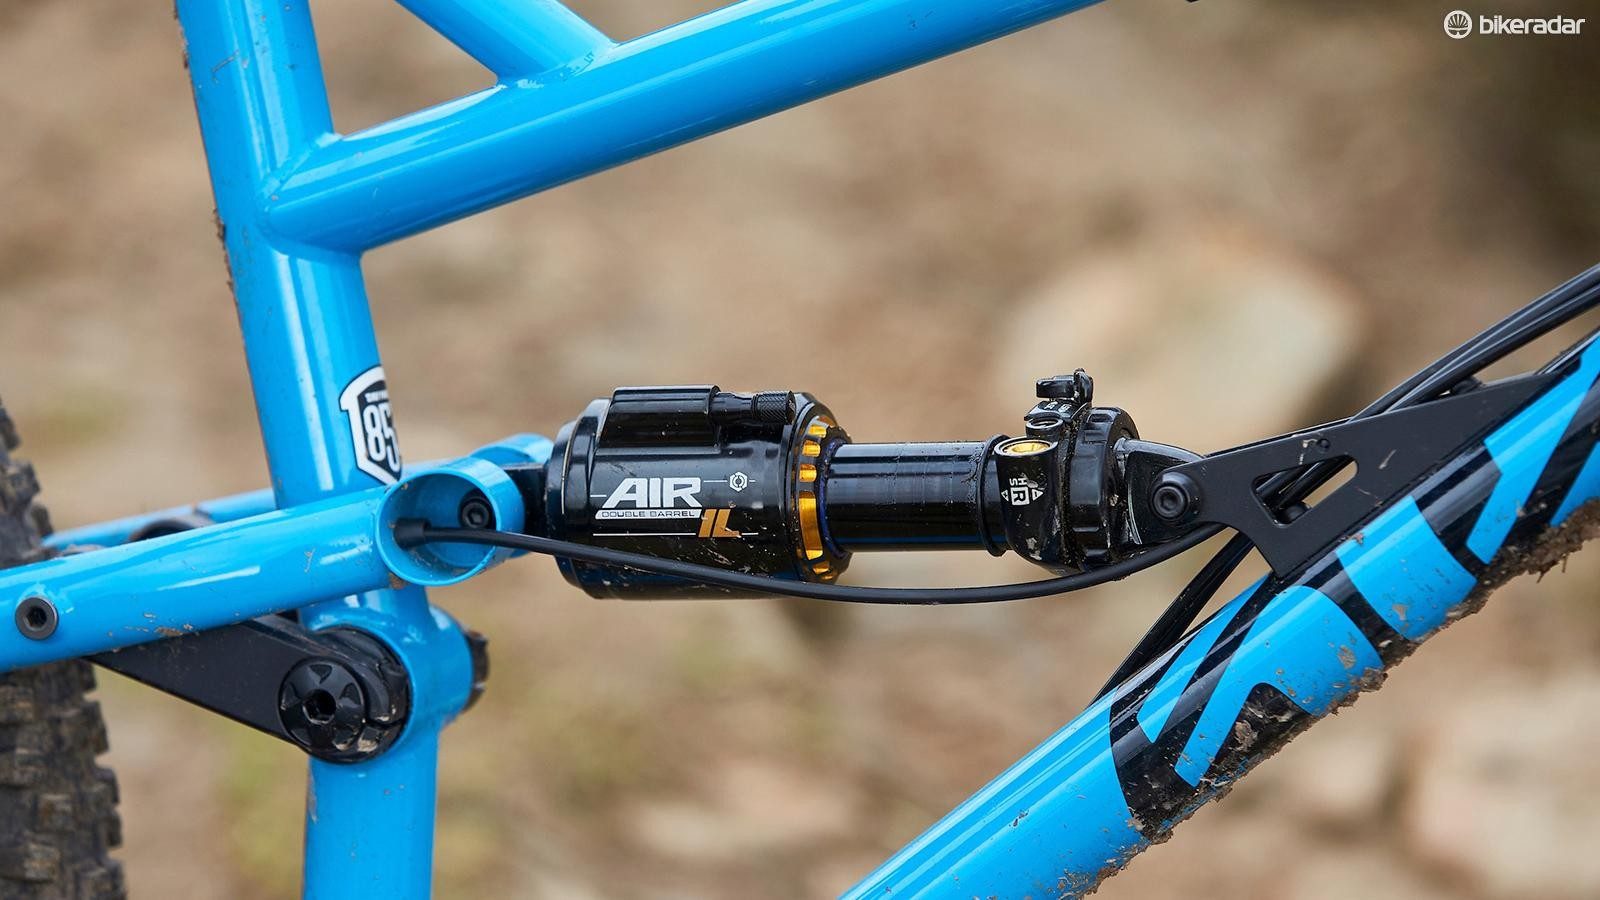 A Cane Creek DB Air Inline controls the rear suspension and has plenty of adjustment